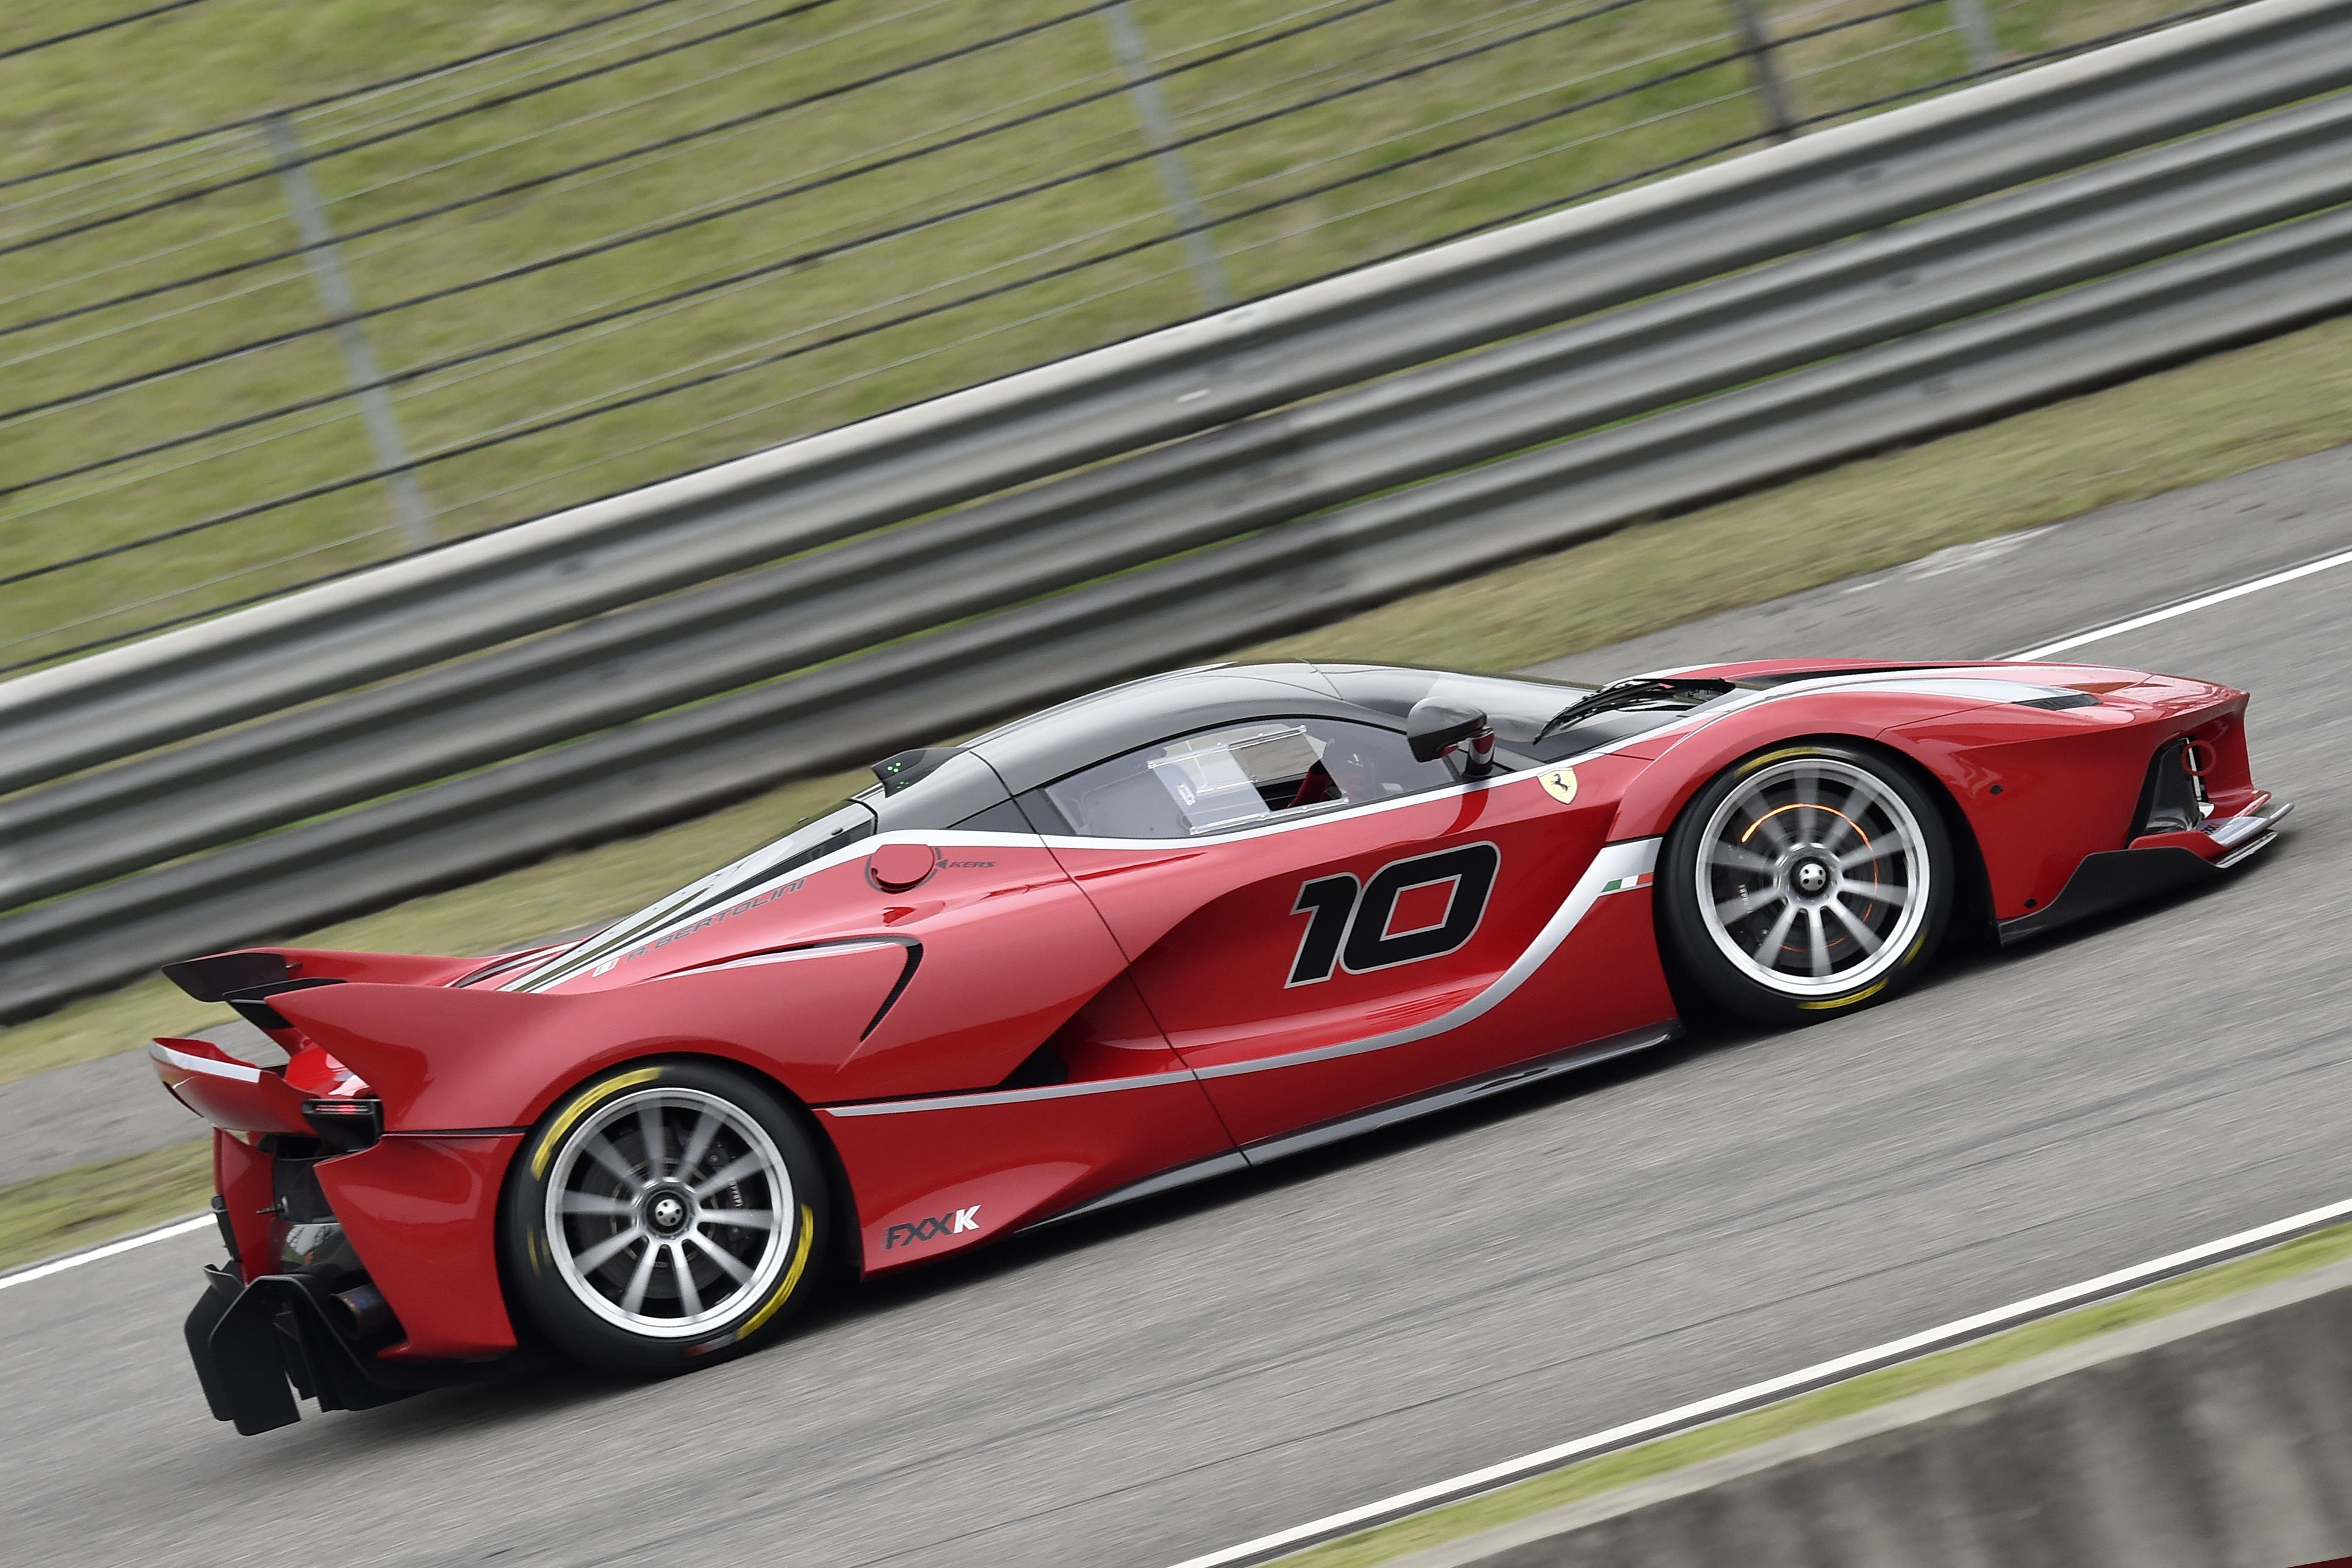 2015 Ferrari Fxx K Supercar Fxx K Wallpaper 3868x2579